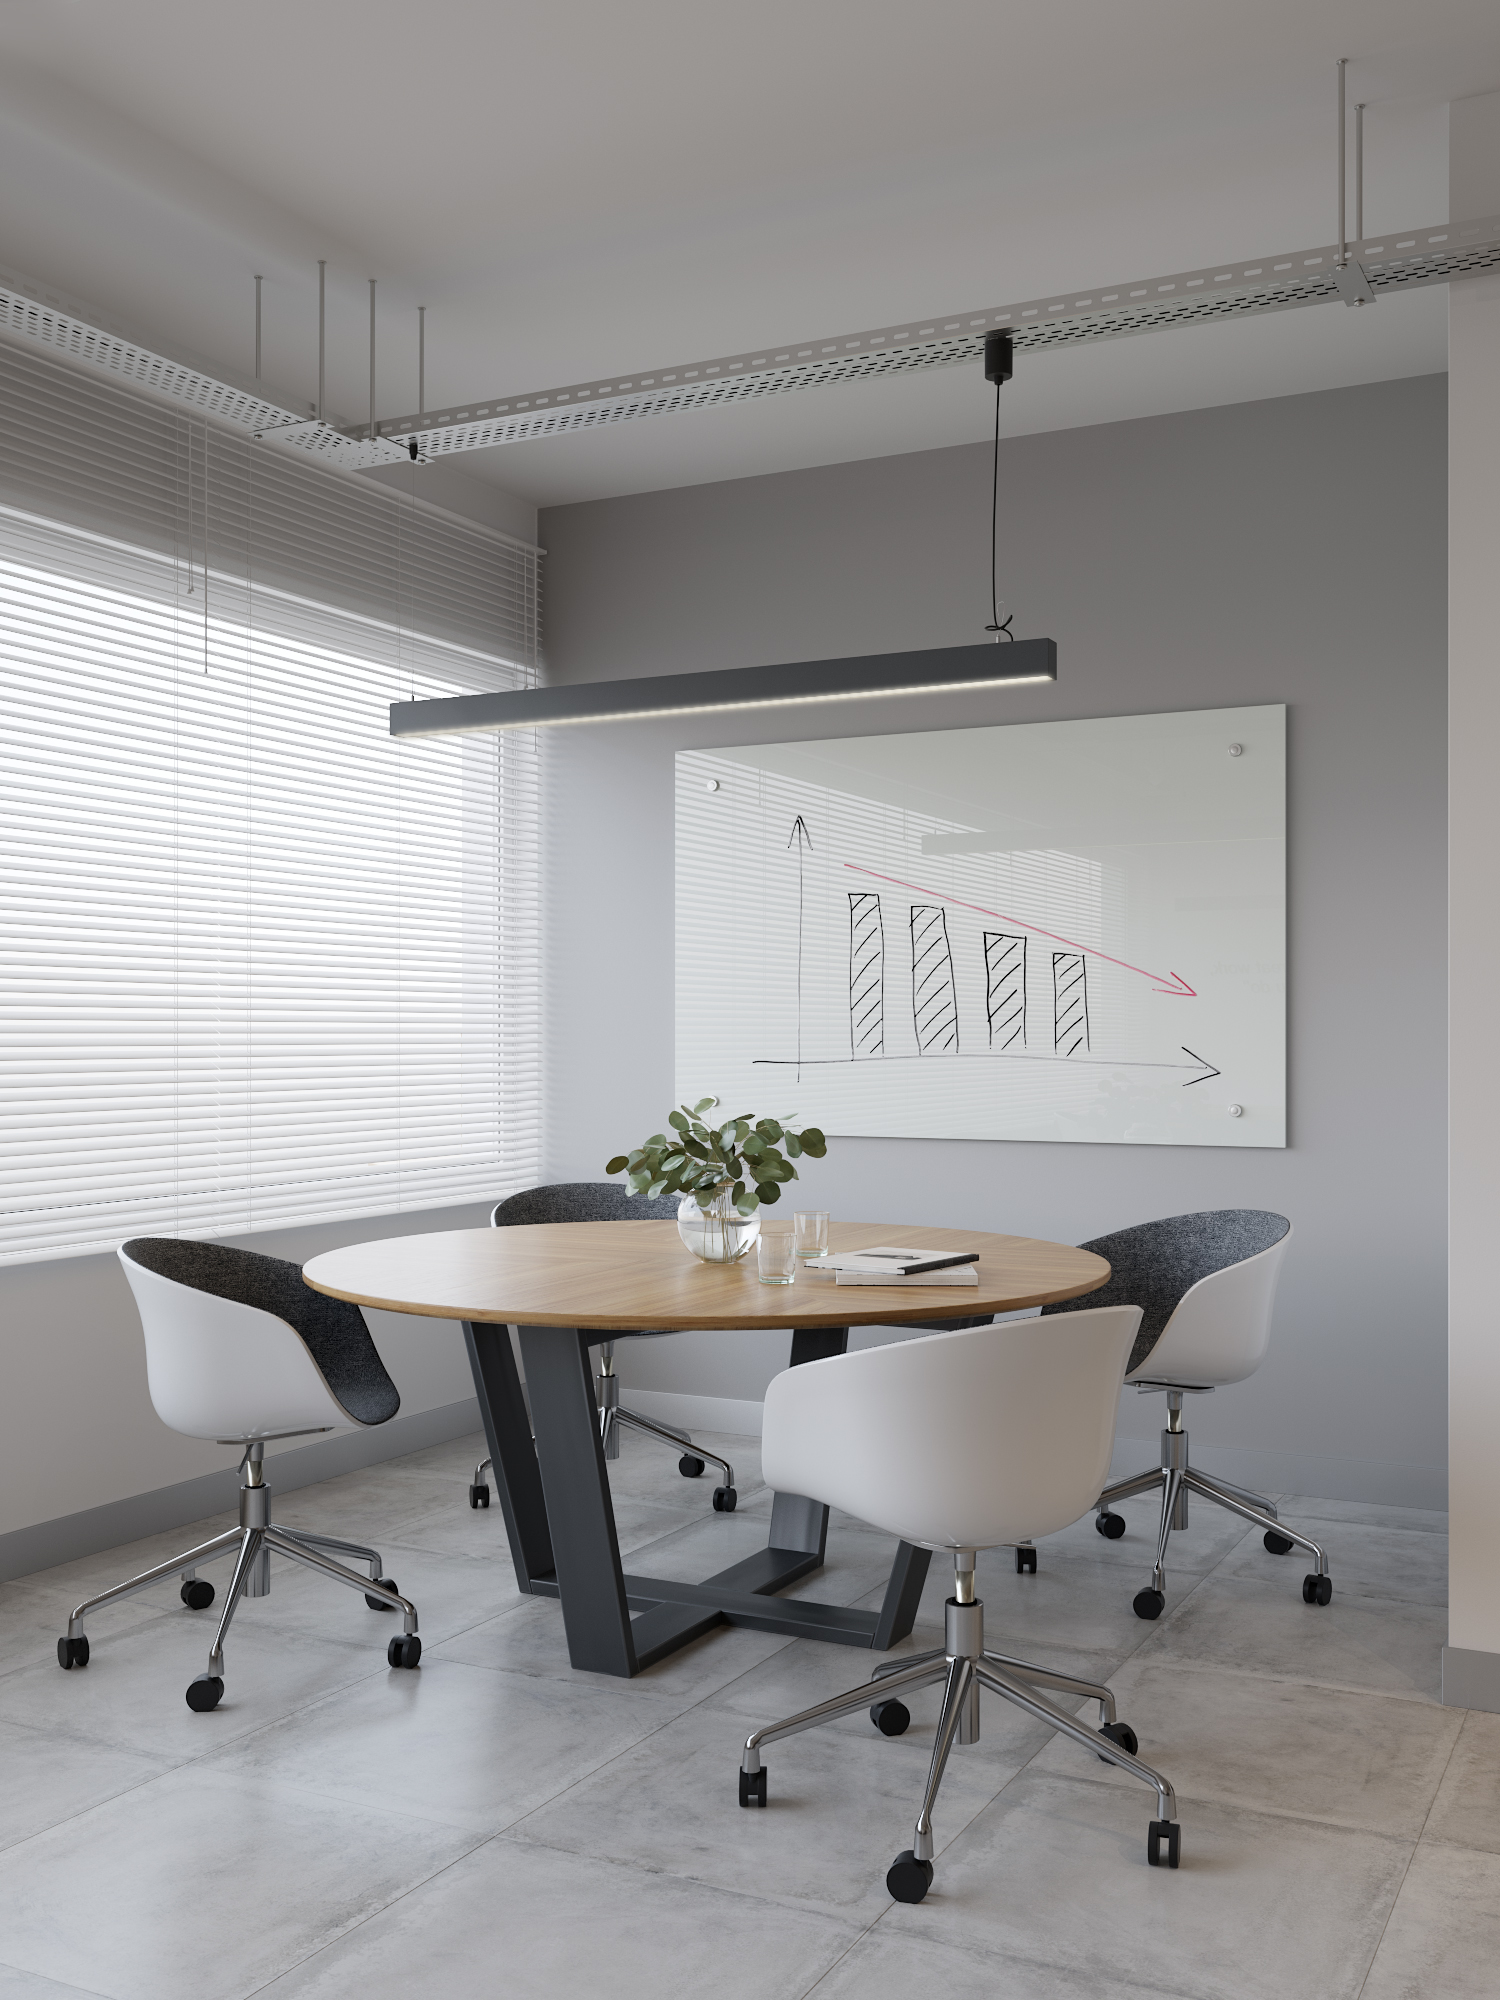 office design, office meeting area, office writing board